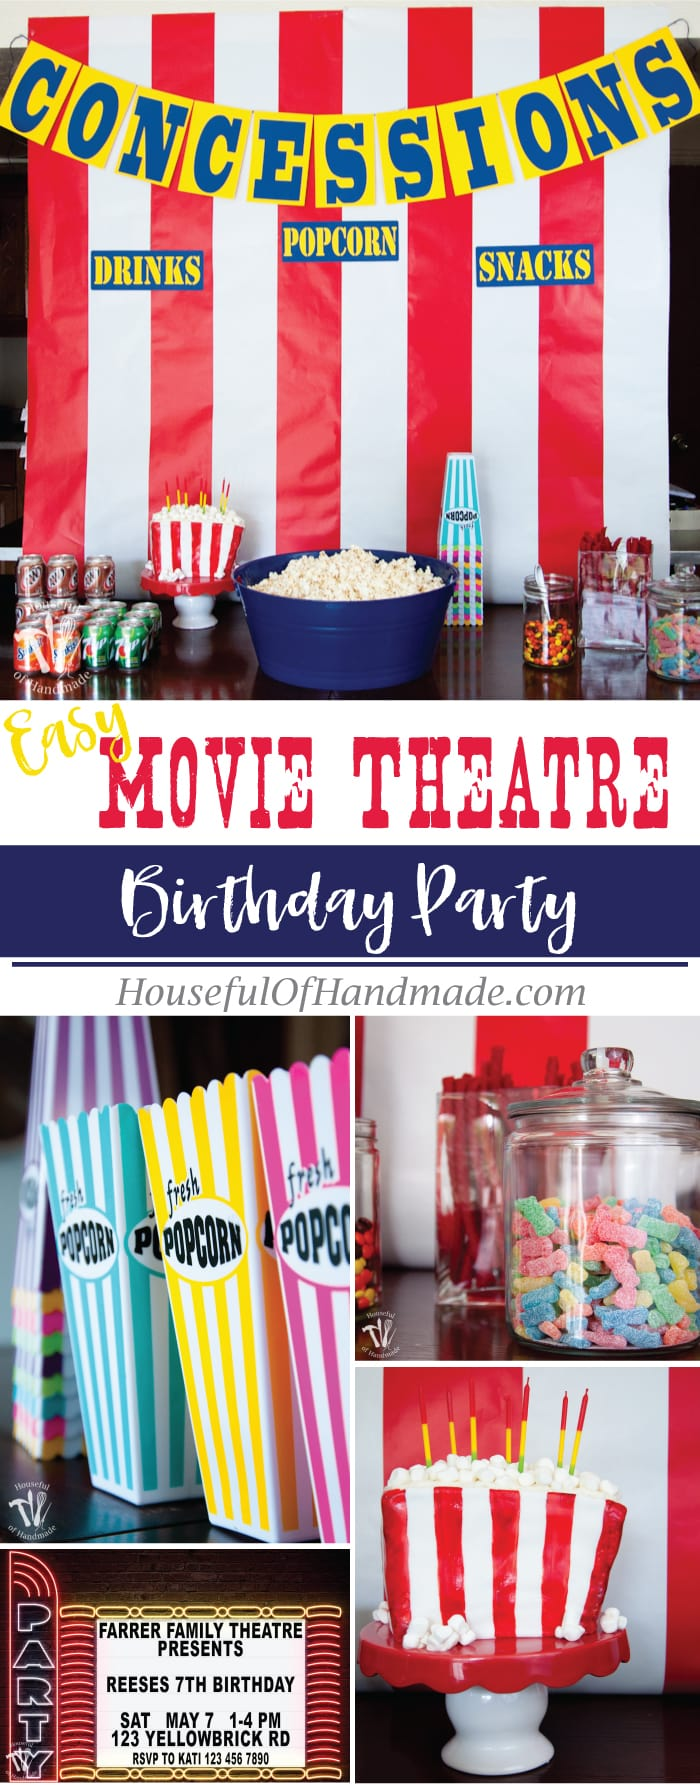 Throw an epic Movie Theatre themed birthday party without all the hassle! Classic movie theatre marque look with concessions and free printables to help you out. Housefulofhandmade.com | #birthdayparty #partyprintables #movieparty #boysparty #girlsparty